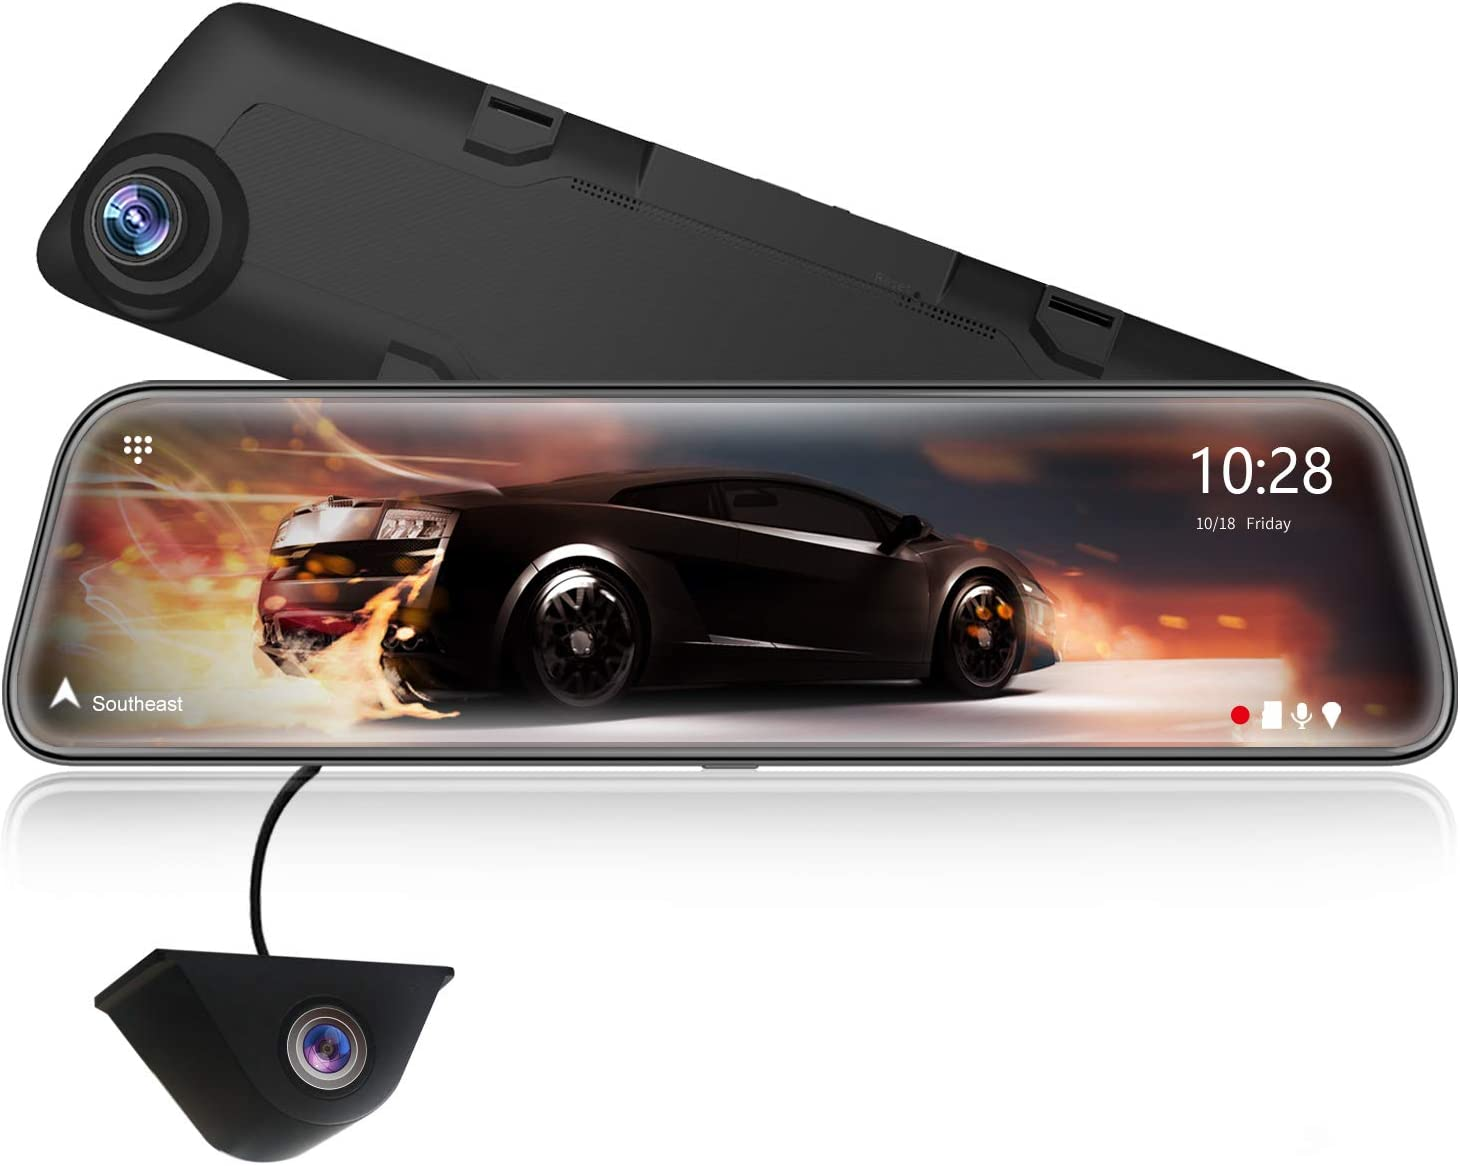 Wolfbox 2 5k Spiegel Dashcam 12 Full Hd Touchscreen Elektronik